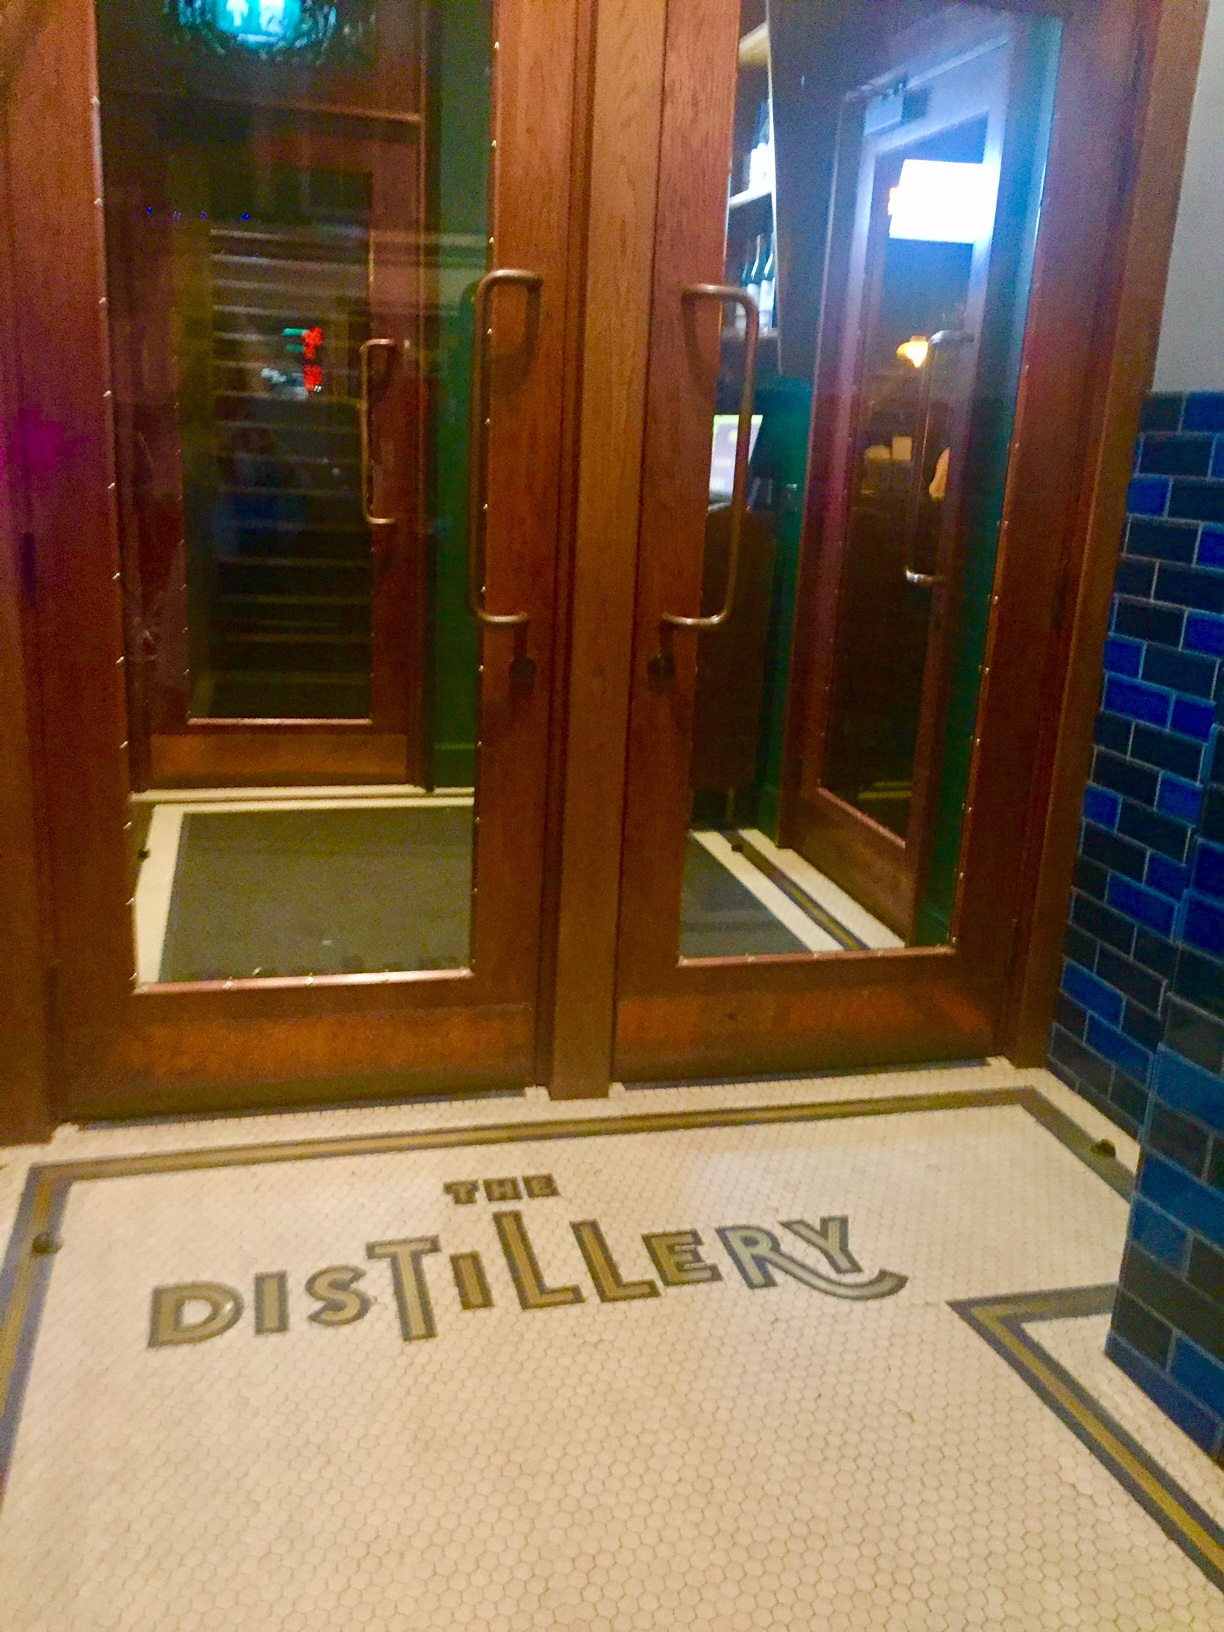 the entrance to The Distillery in Notting Hill